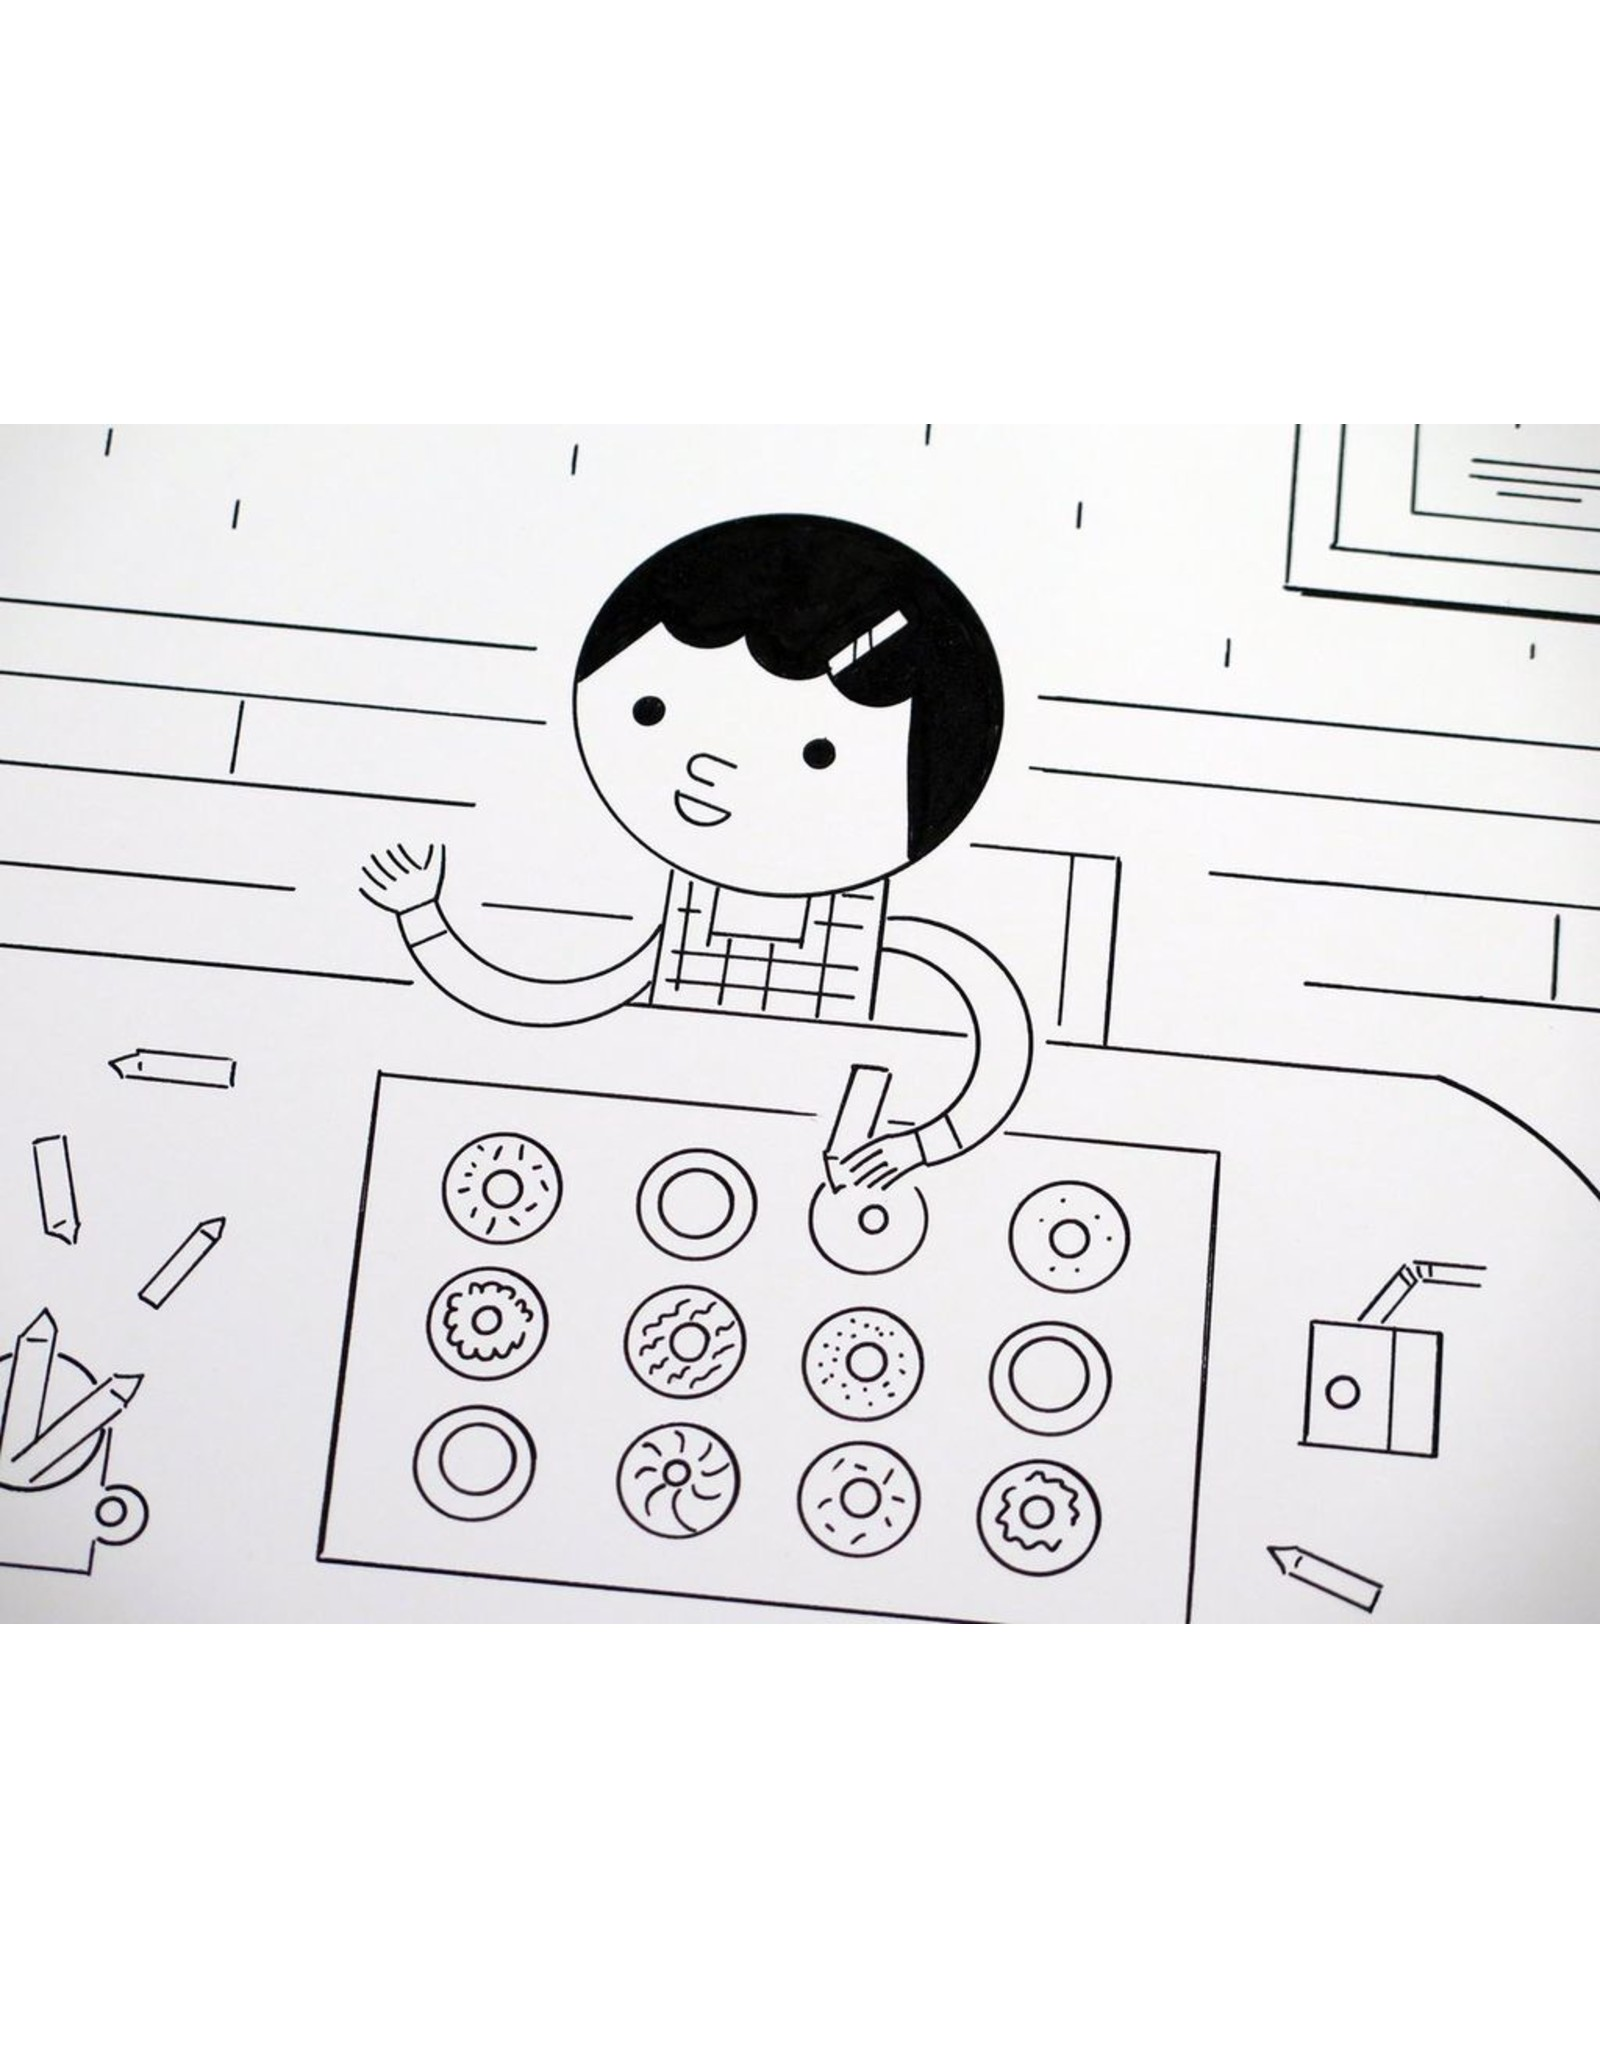 Ivan Brunetti Flowers and Donuts (from 3X4) 2017 by Ivan Brunetti